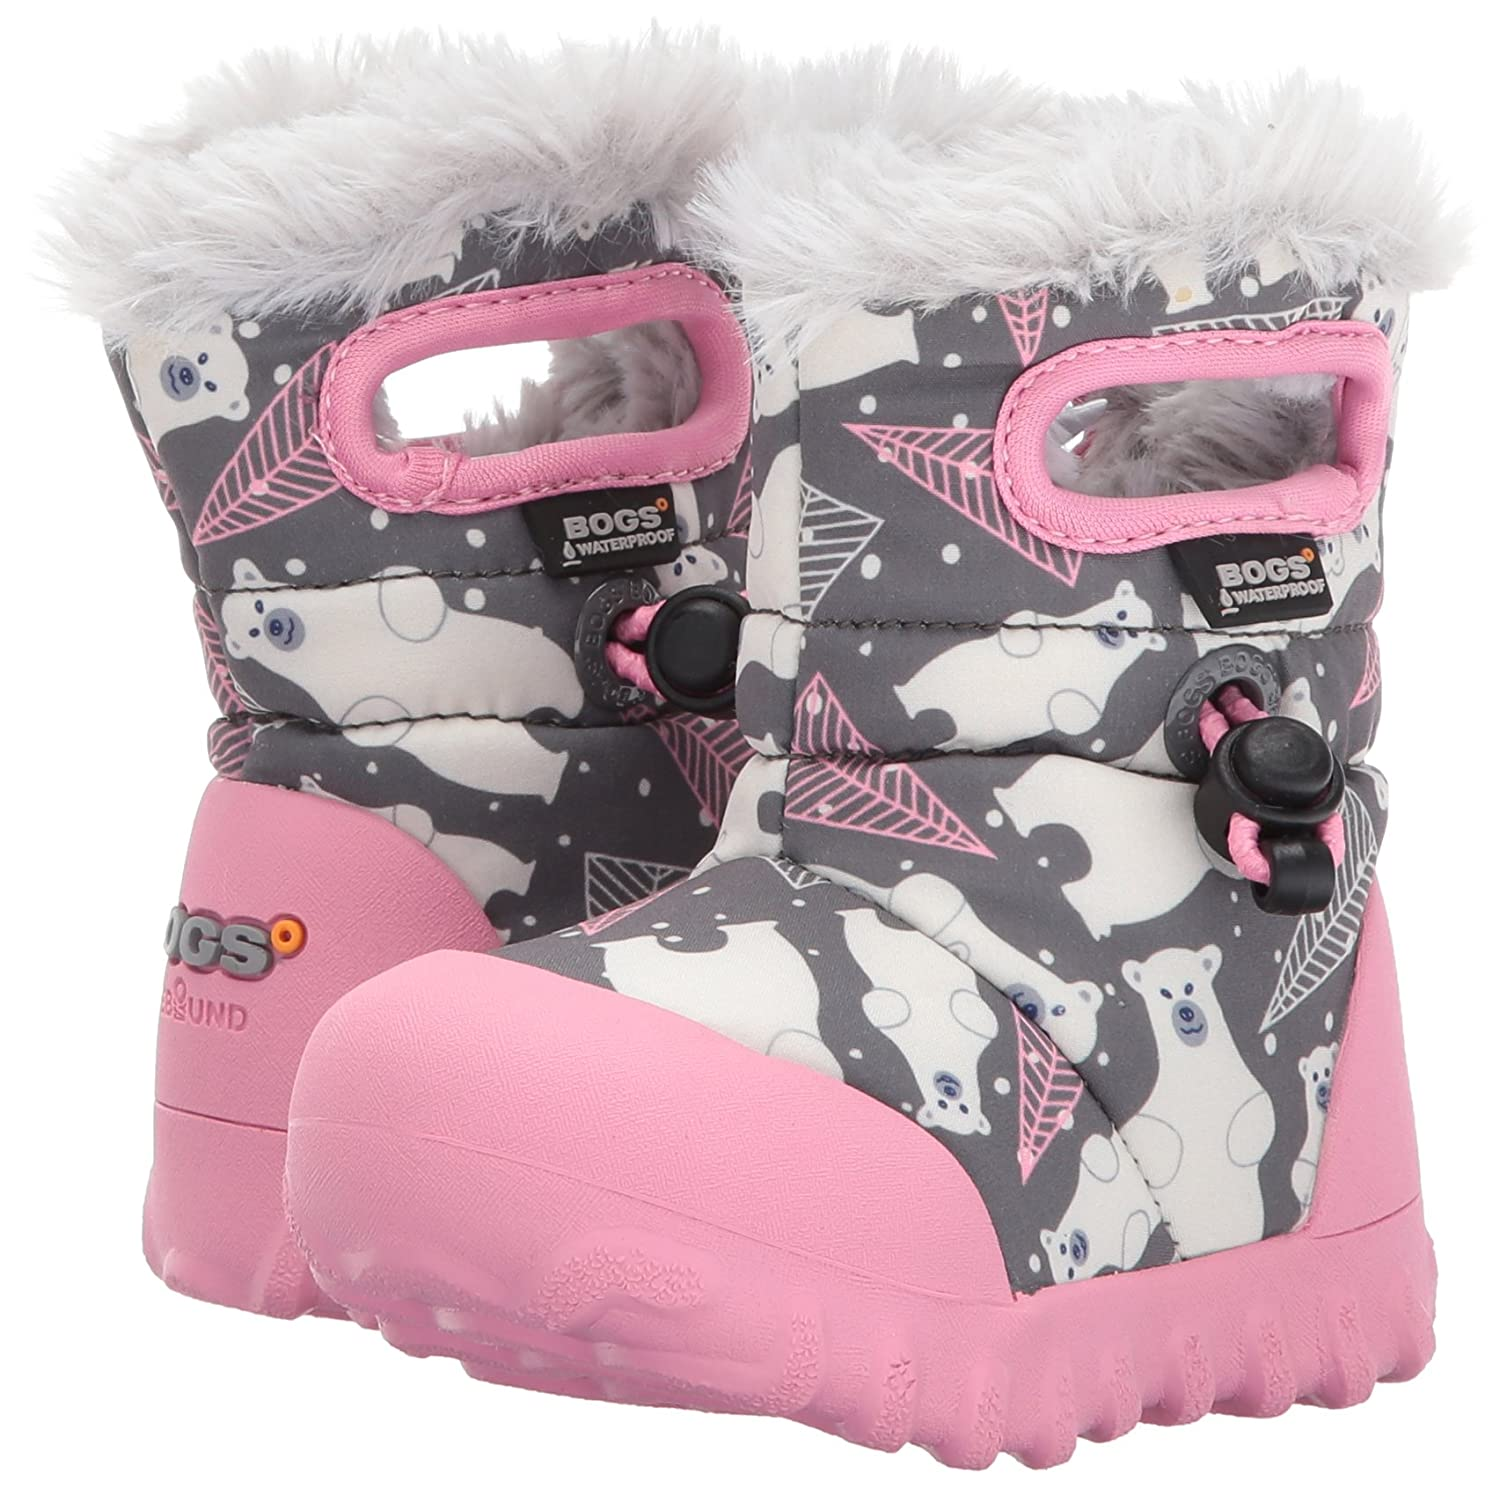 Girls Baby Bogs BMOC Bears Purple Waterproof Insulated Warm Lined Wellies Boot 721791-UK 3 (EU 20) mWqxD